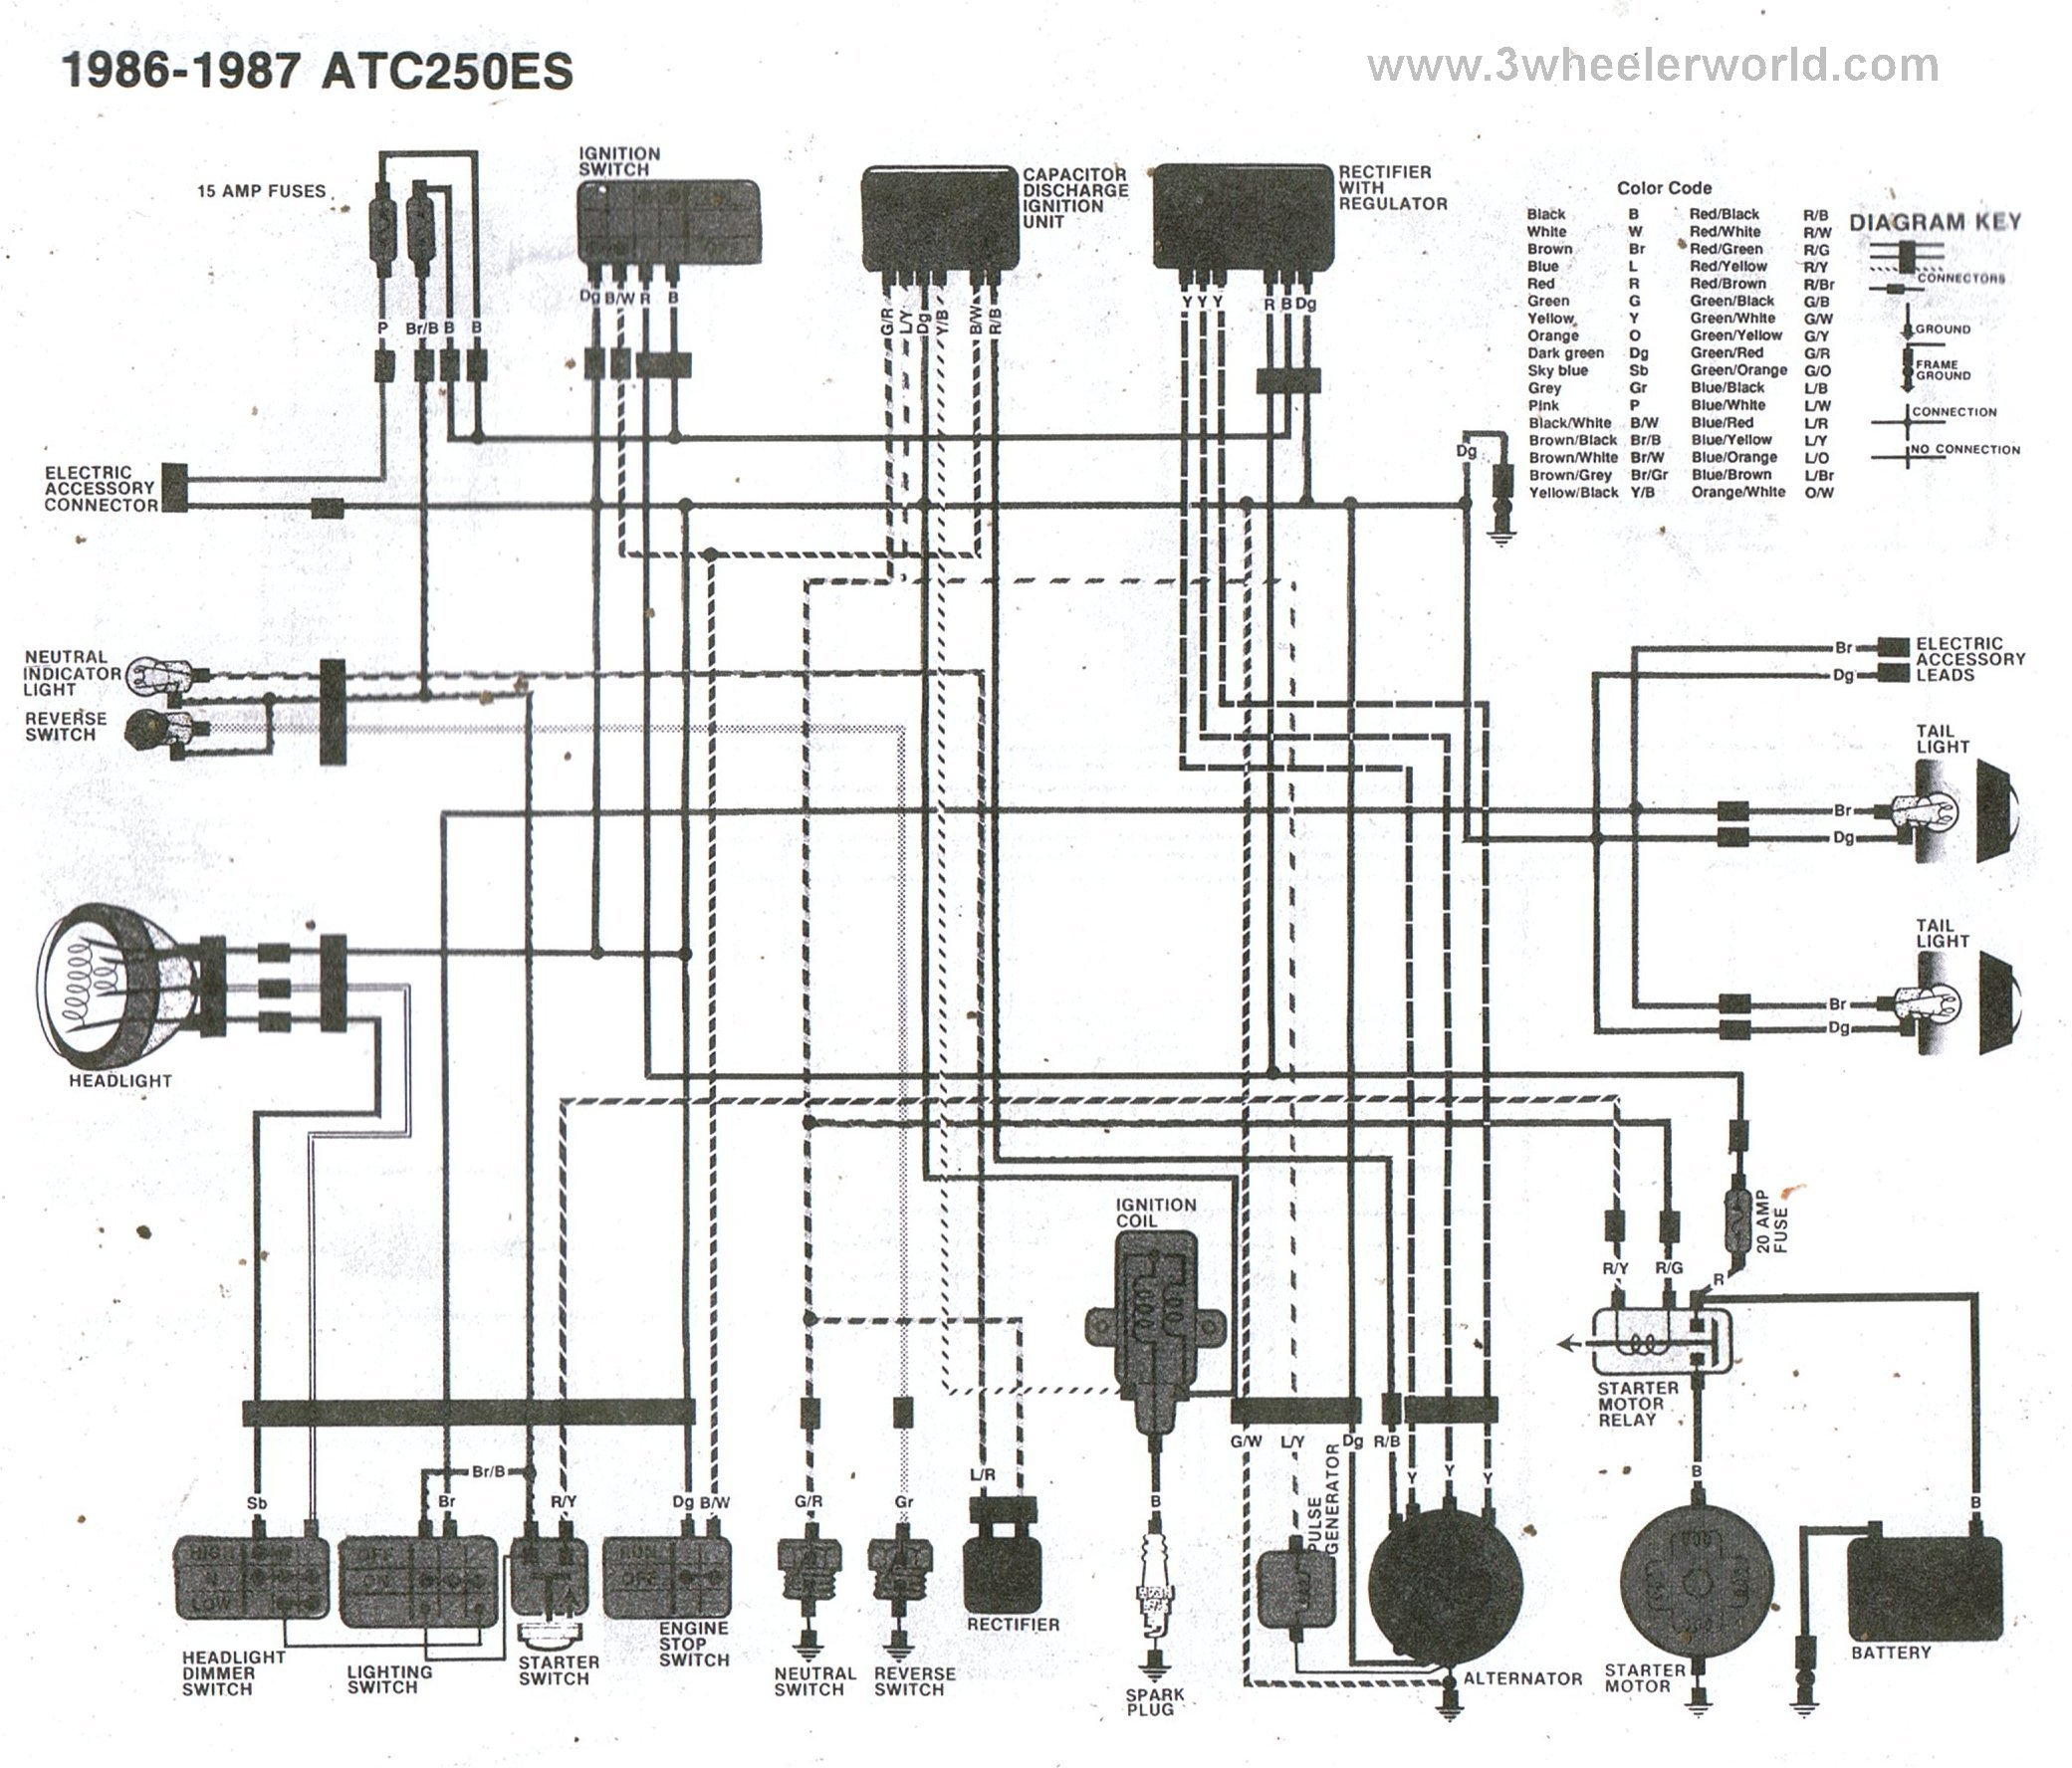 ATC250ESx86Thru87 3 wheeler world tech help honda wiring diagrams yamaha moto 4 250 wiring diagrams at couponss.co